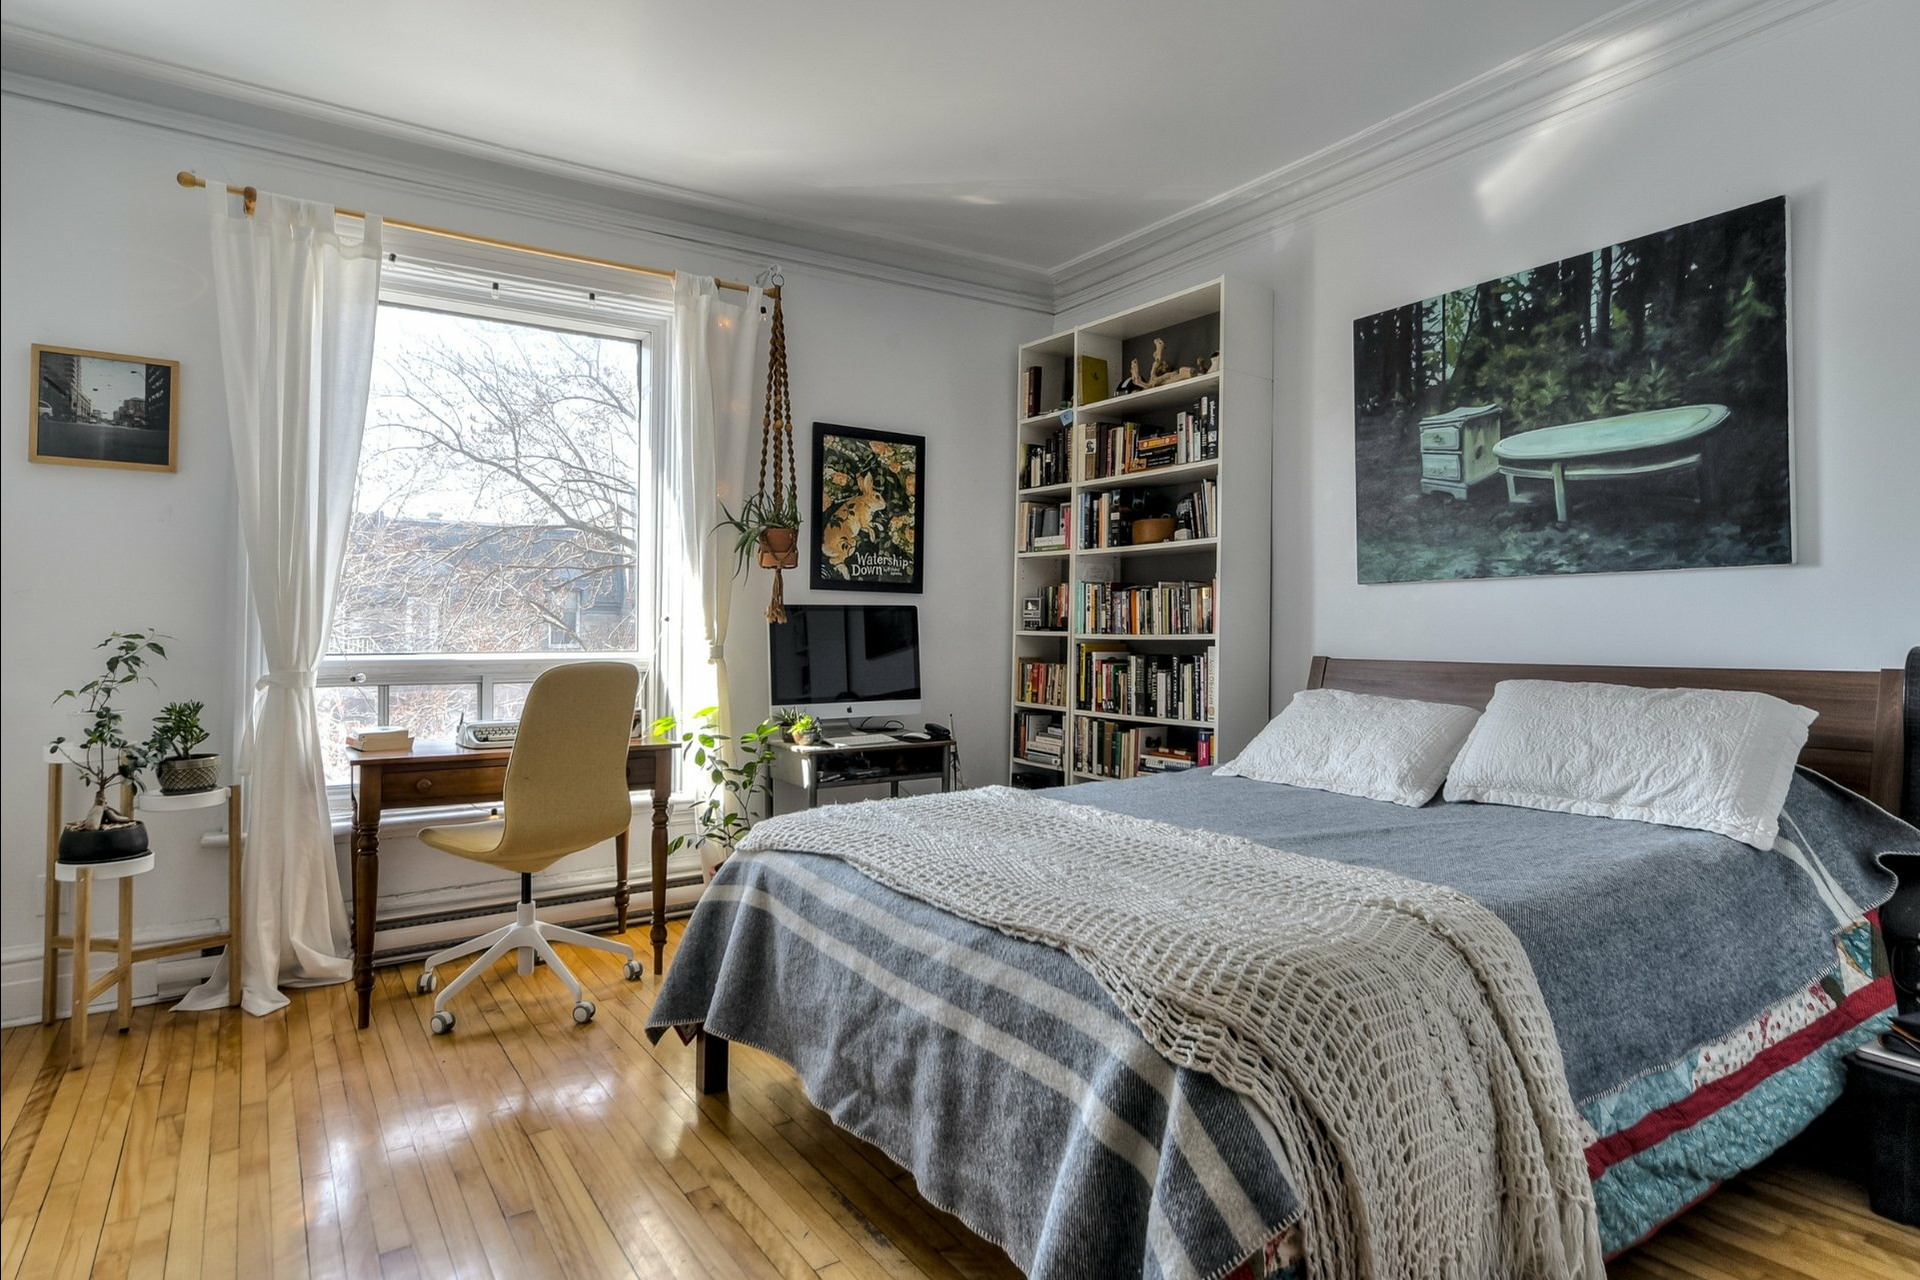 image 9 - Triplex For sale Montréal Le Plateau-Mont-Royal  - 6 rooms